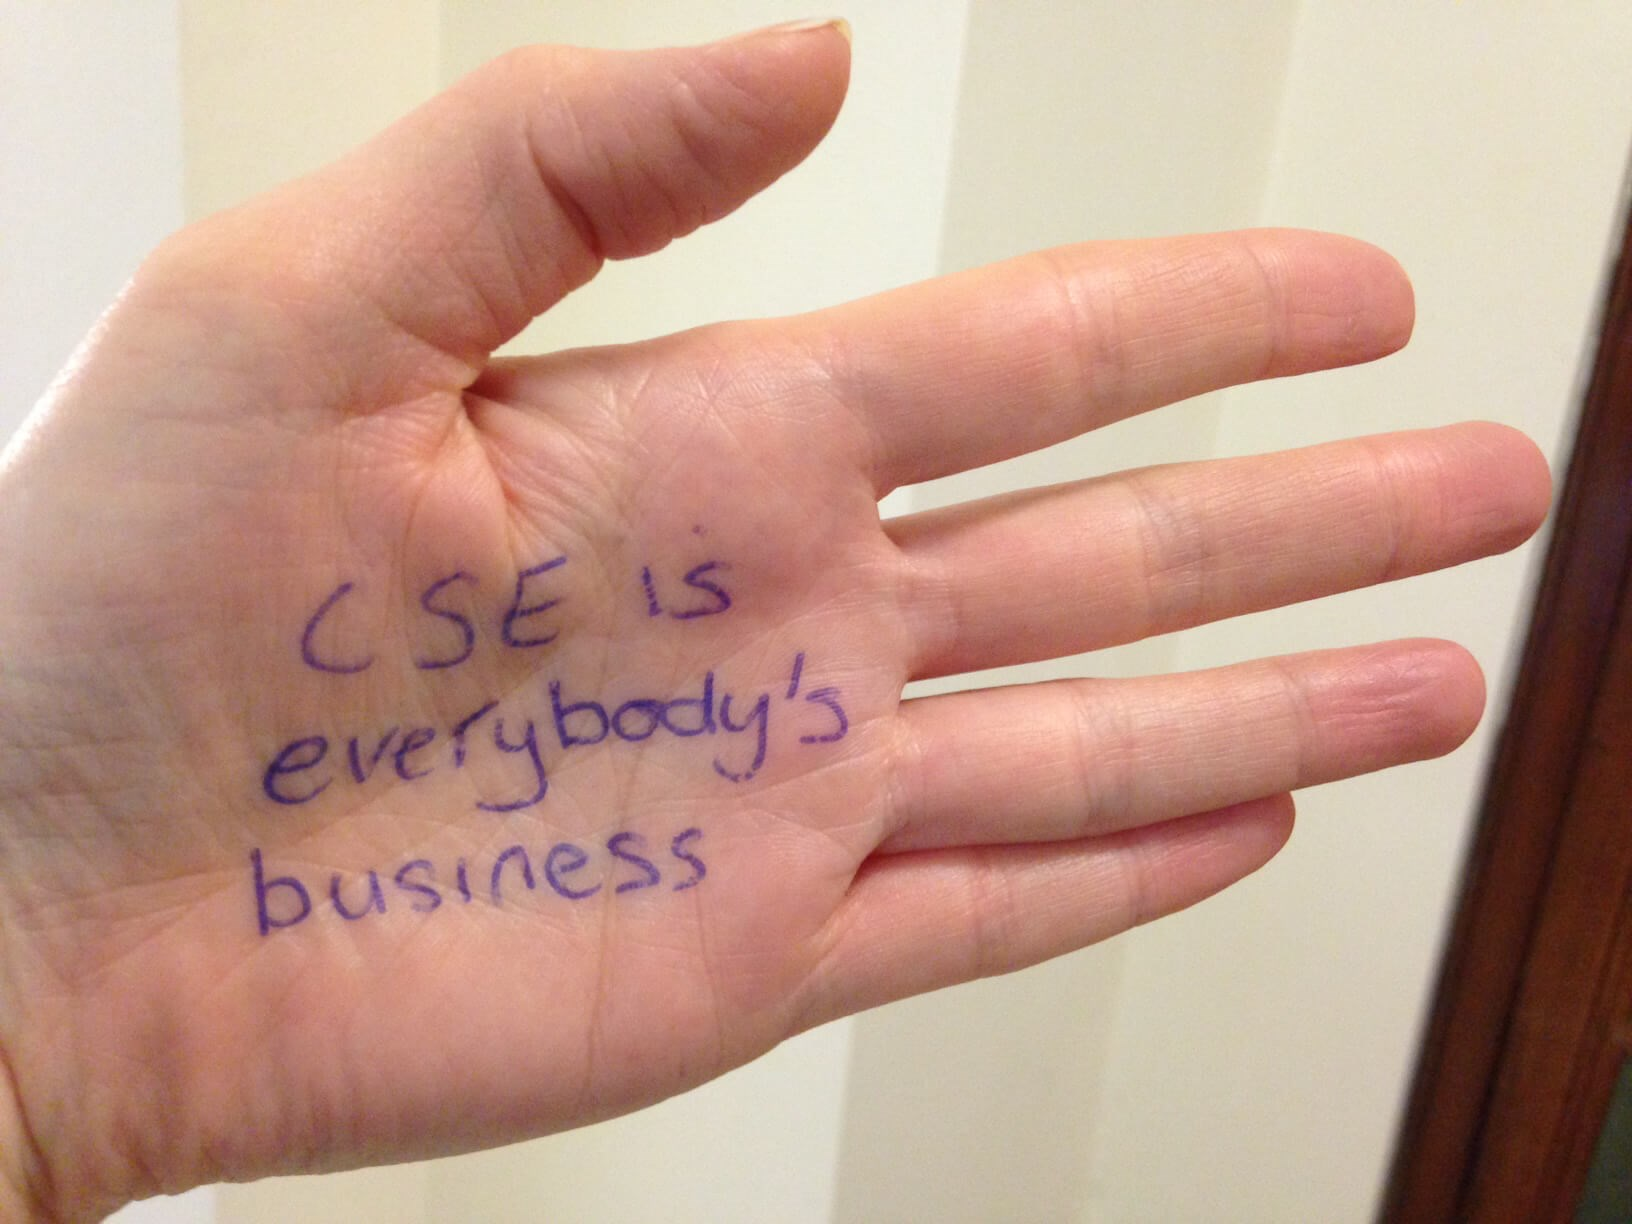 Pledge to stop abuse on CSE awareness day